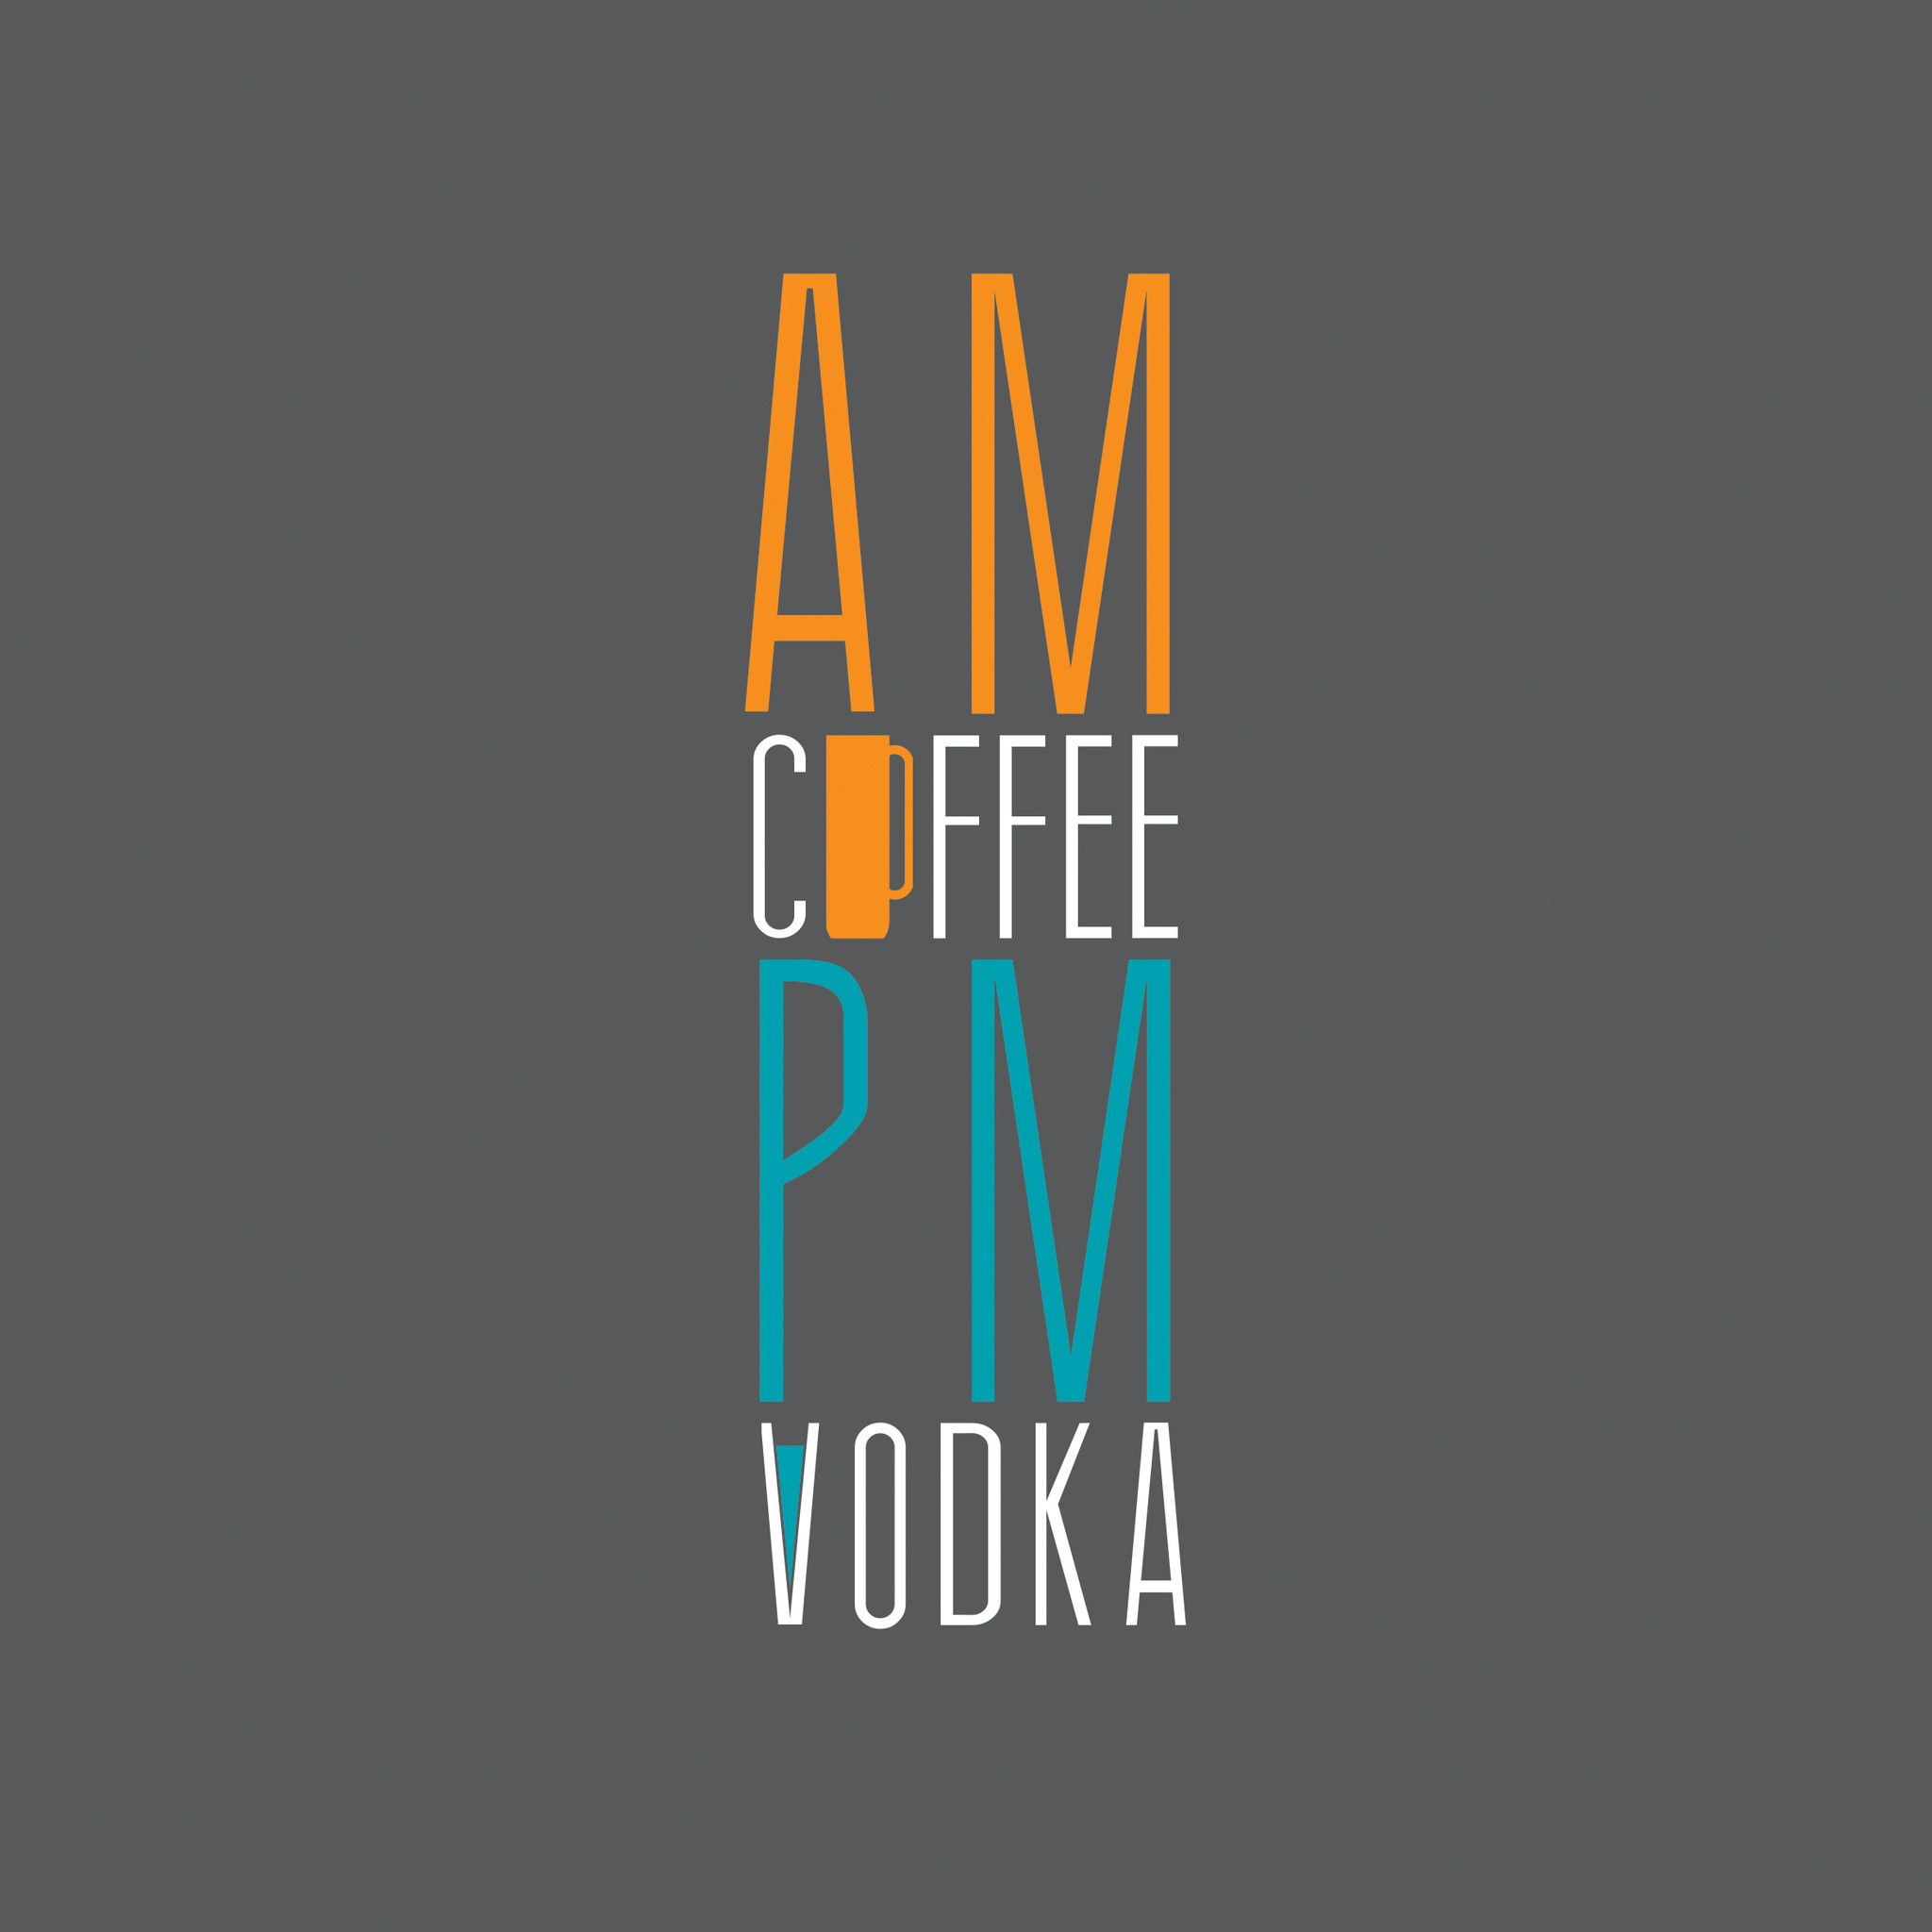 Wallpaper iphone vodka - Am Coffee Pm Vodka Ipad Wallpaper Hd Ipad Wallpaper